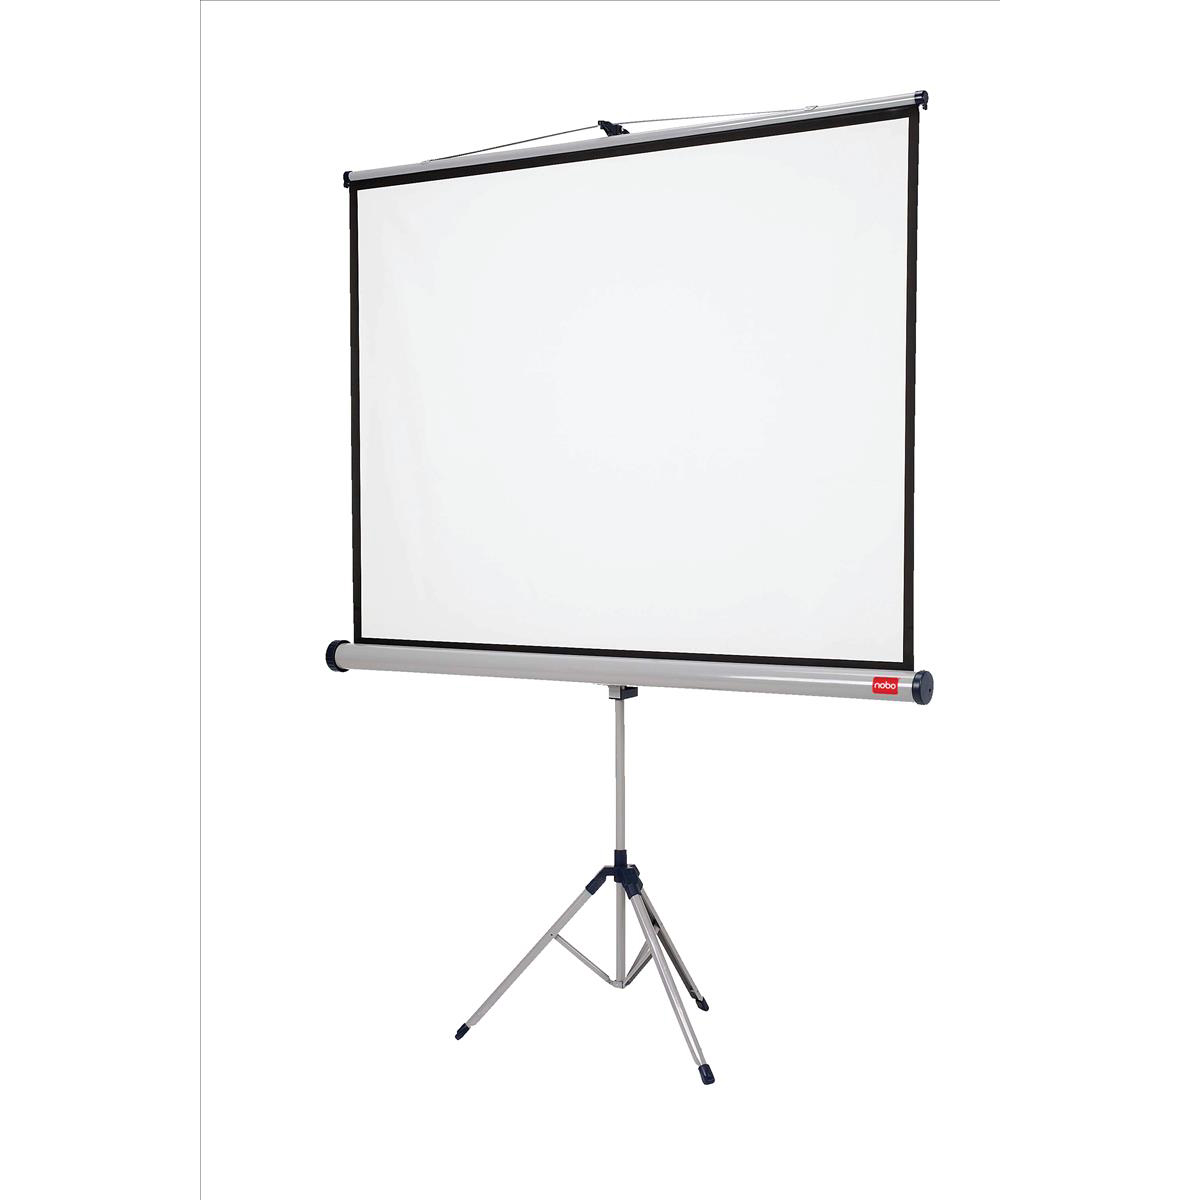 Nobo Tripod Widescreen Projection Screen W2000xH1310 Ref 1902397W